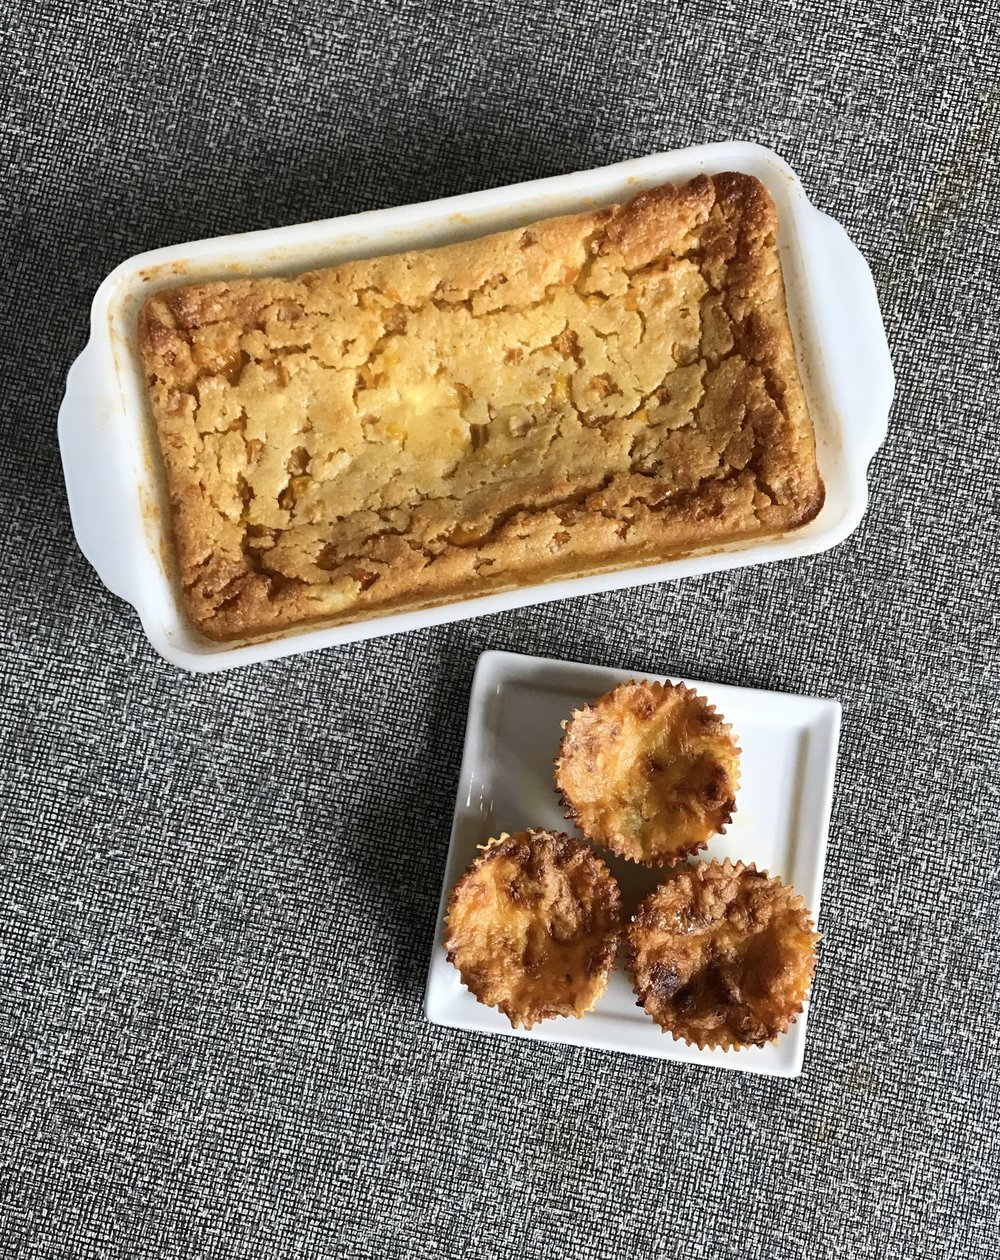 corn pudding12.jpg